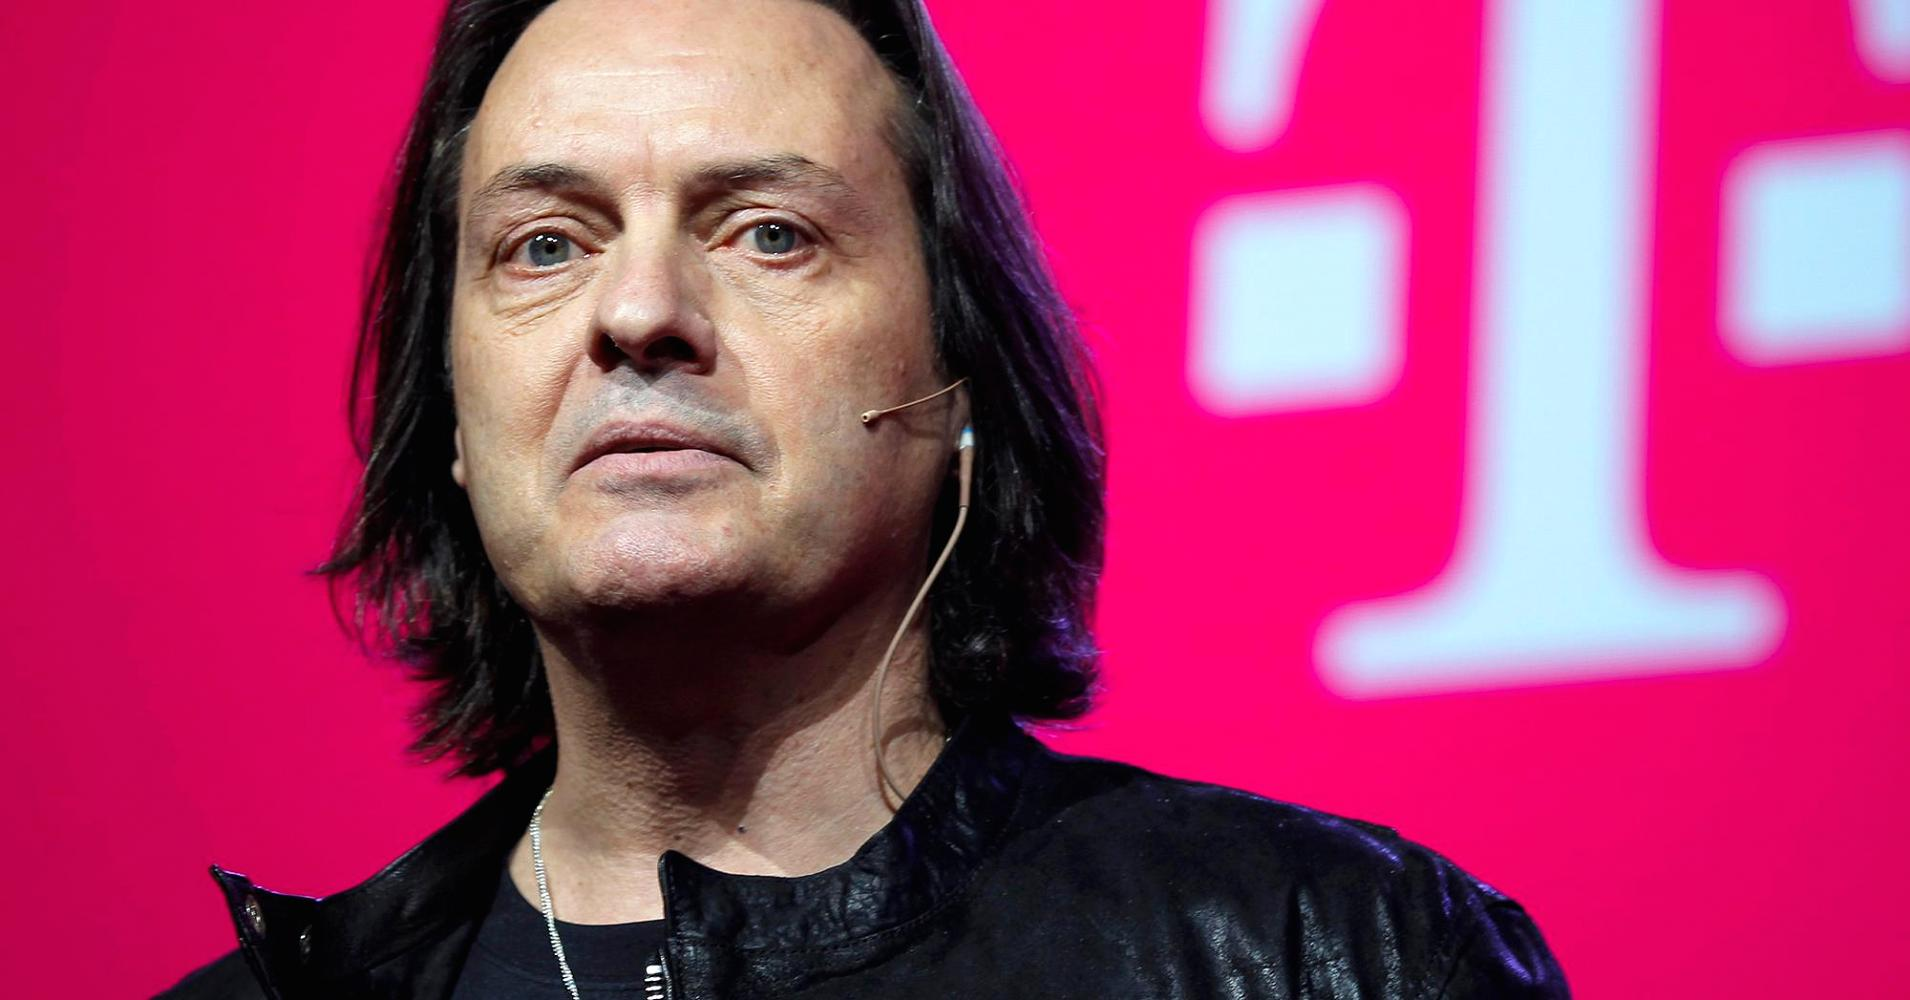 Social Ceo Of The Week Wait For It John Legere Ceo Of T